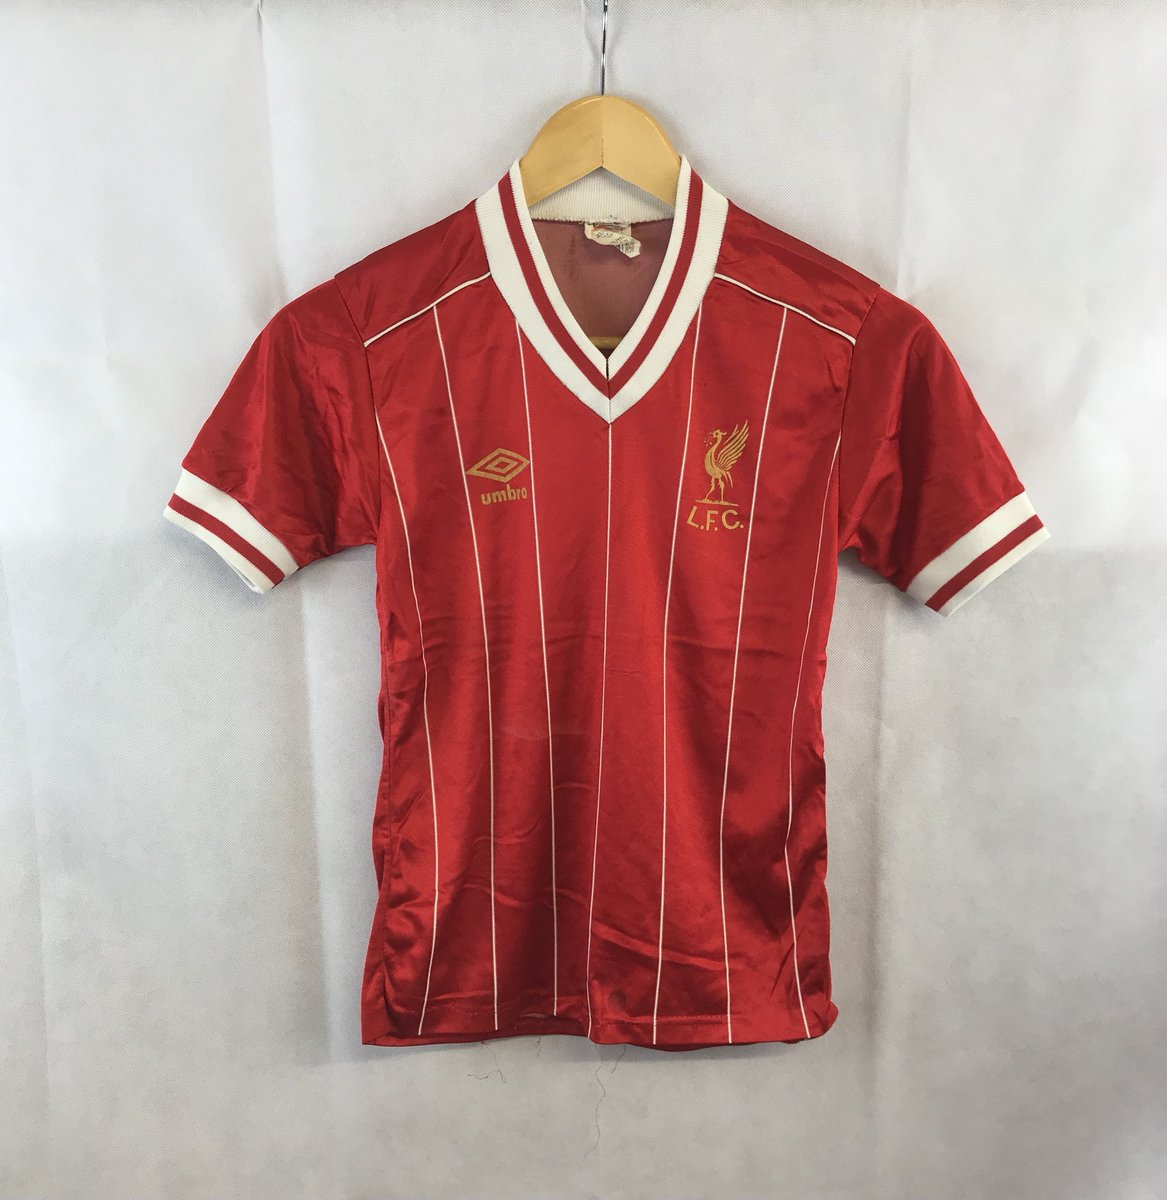 9097ba3a314 Buy Old Football Shirts Cheap – EDGE Engineering and Consulting Limited